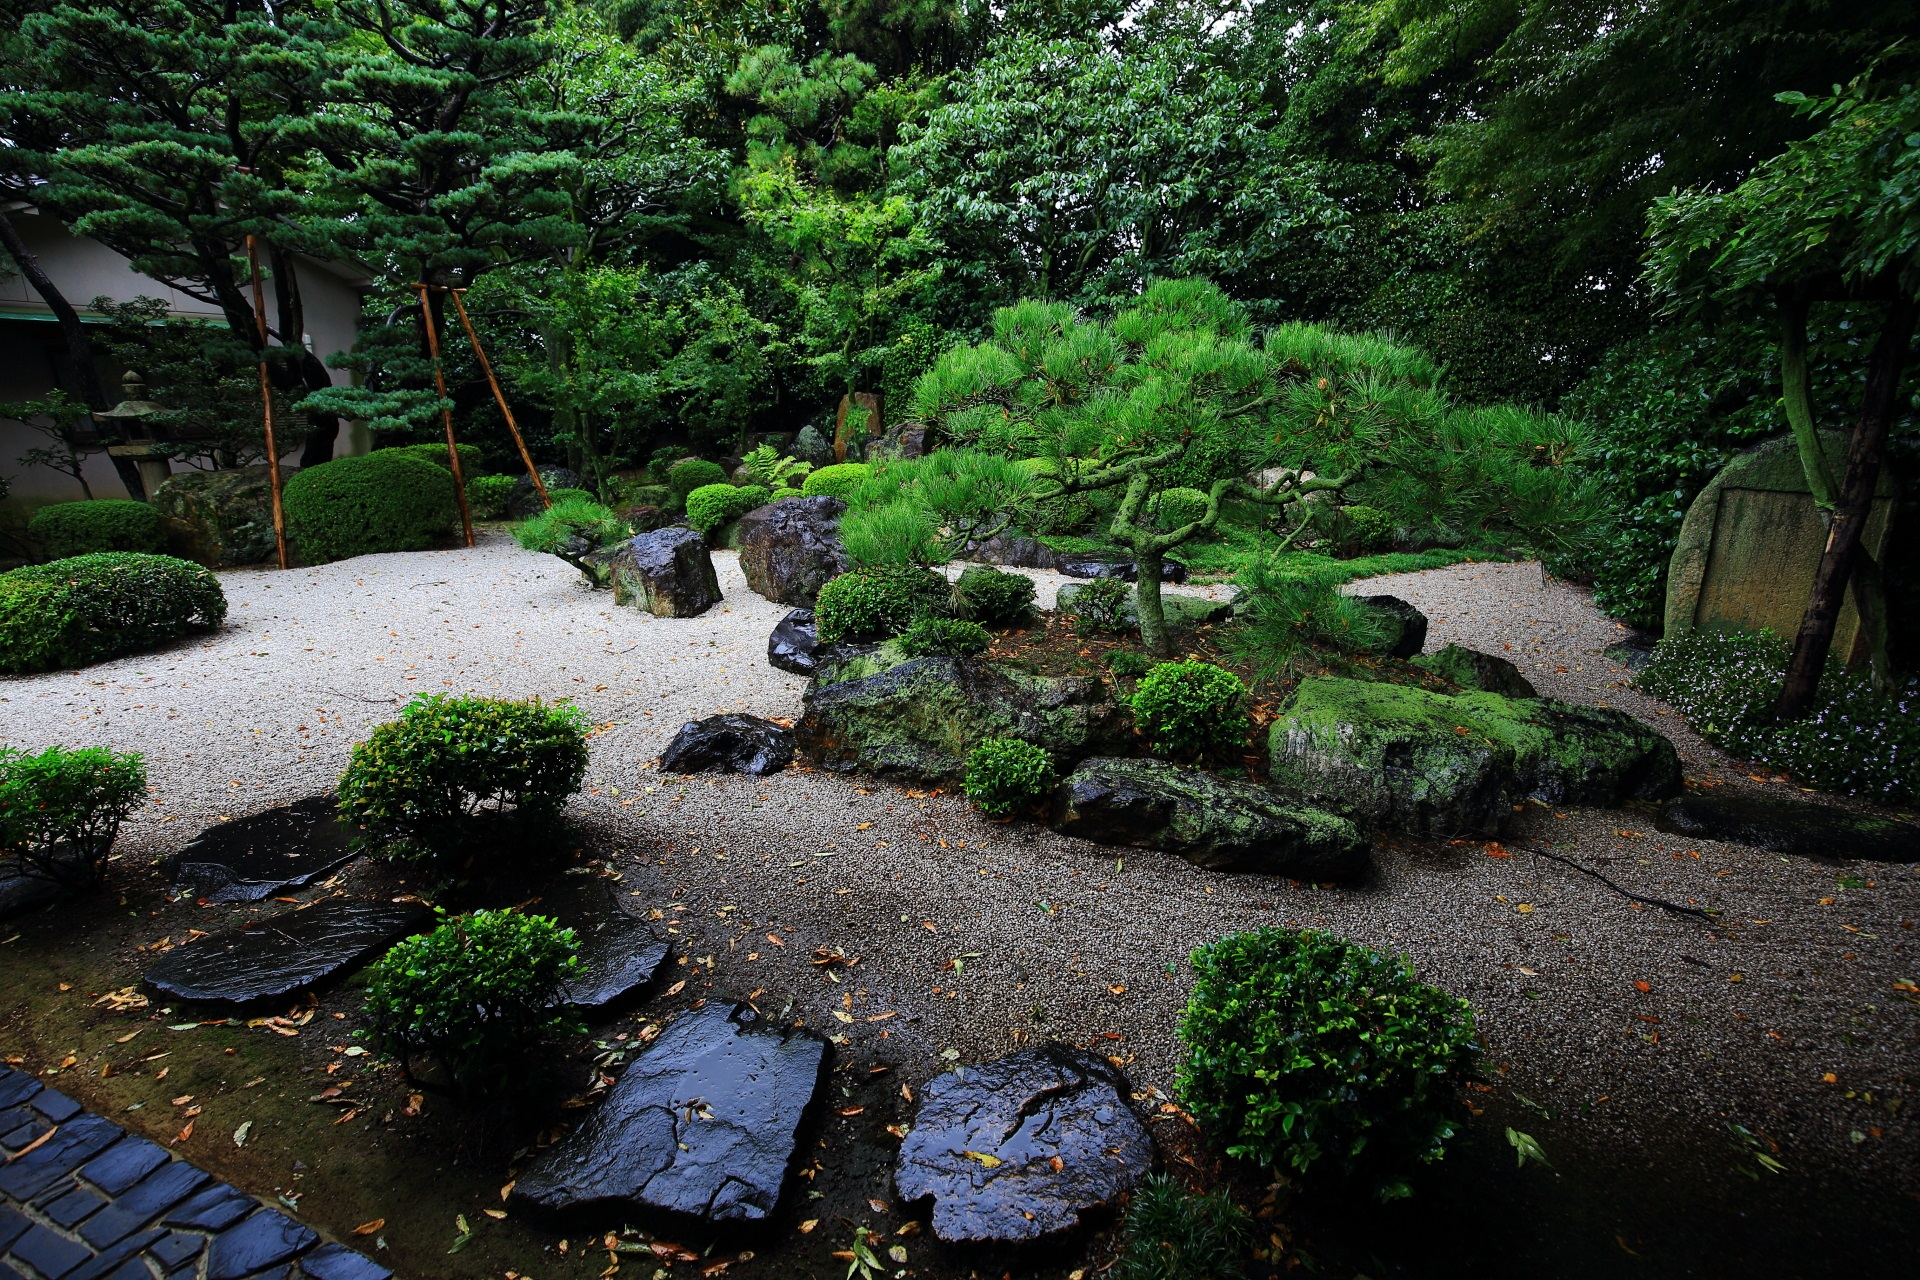 A stone garden at Goko-no-miya Shrine in Kyoto,Japan